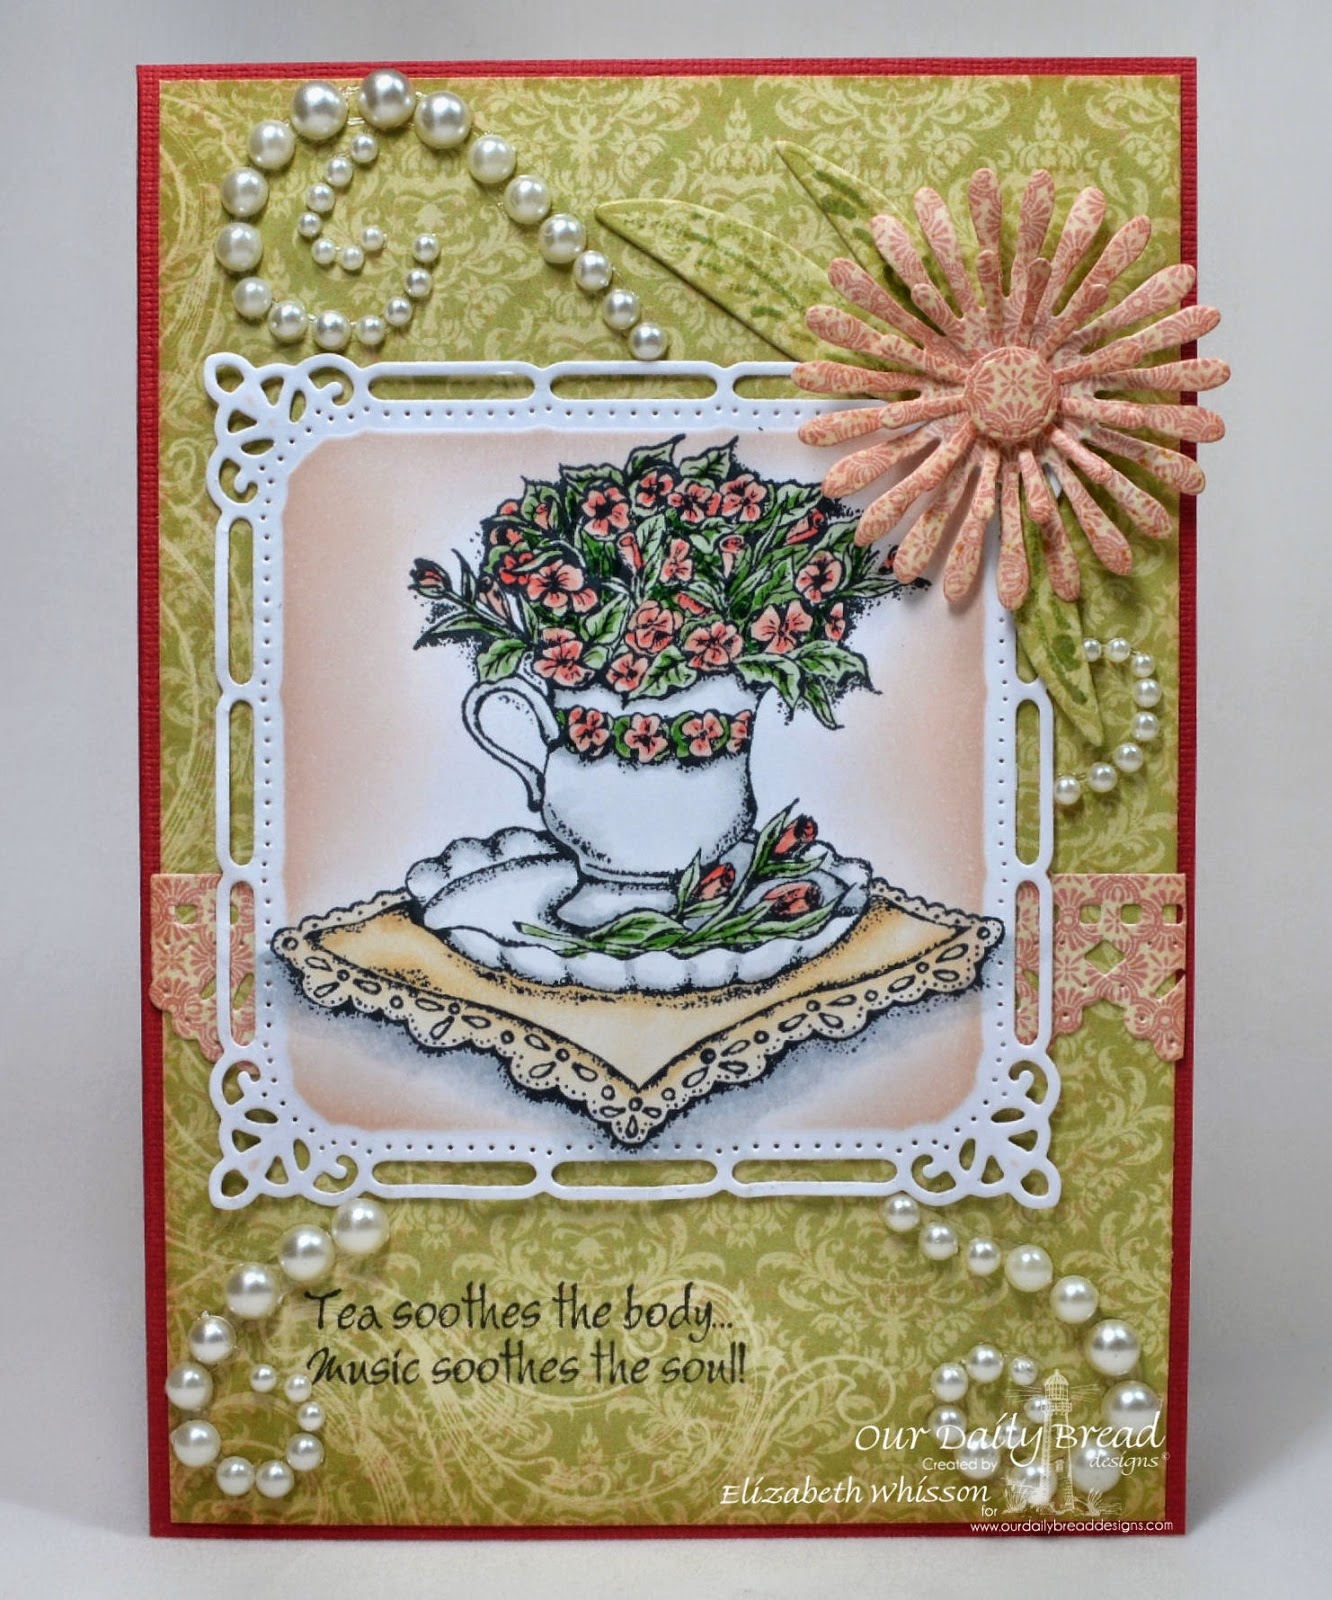 Our Daily Bread Designs, Birthday Blessings, Just a Note, ODBD Beautiful Borders Dies, ODBD Asters and Leaves Dies, ODBD Blushing Rose Paper Collection, Designed by Elizabeth Whisson